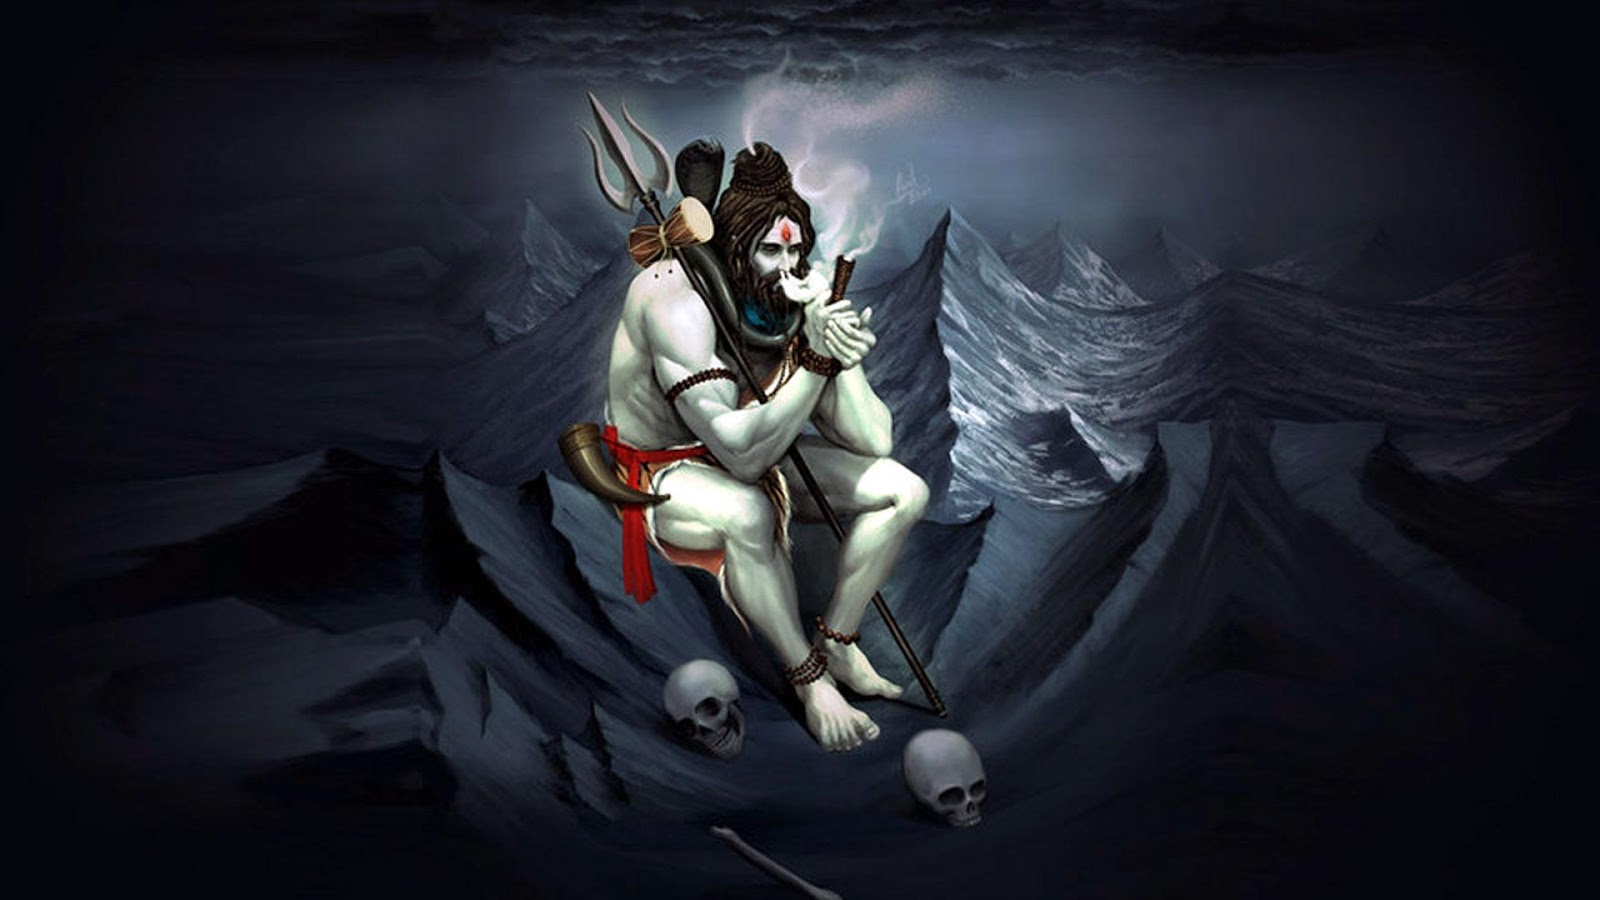 Mahadev Wallpaper Hd: Mahadev HD Wallpaper 1.0 APK Download